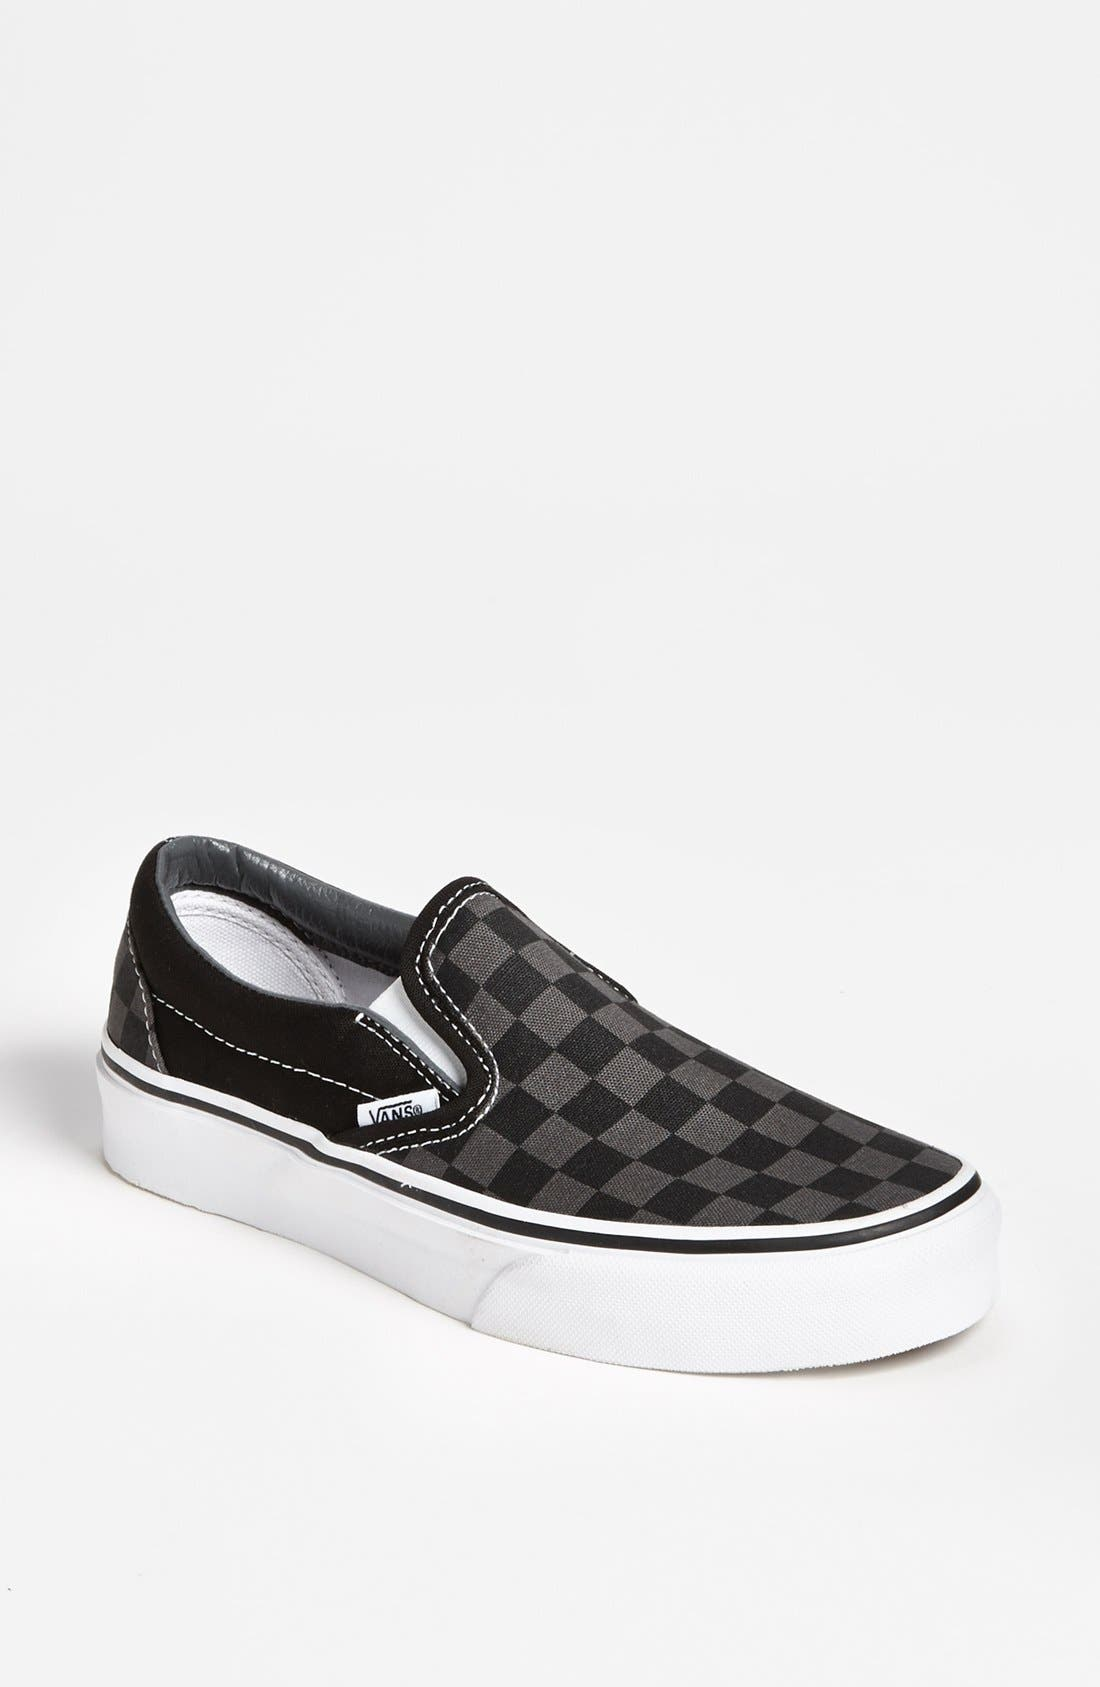 6fd061f988 ... UPC 658100317889 product image for Women s Vans  Classic - Checker   Sneaker